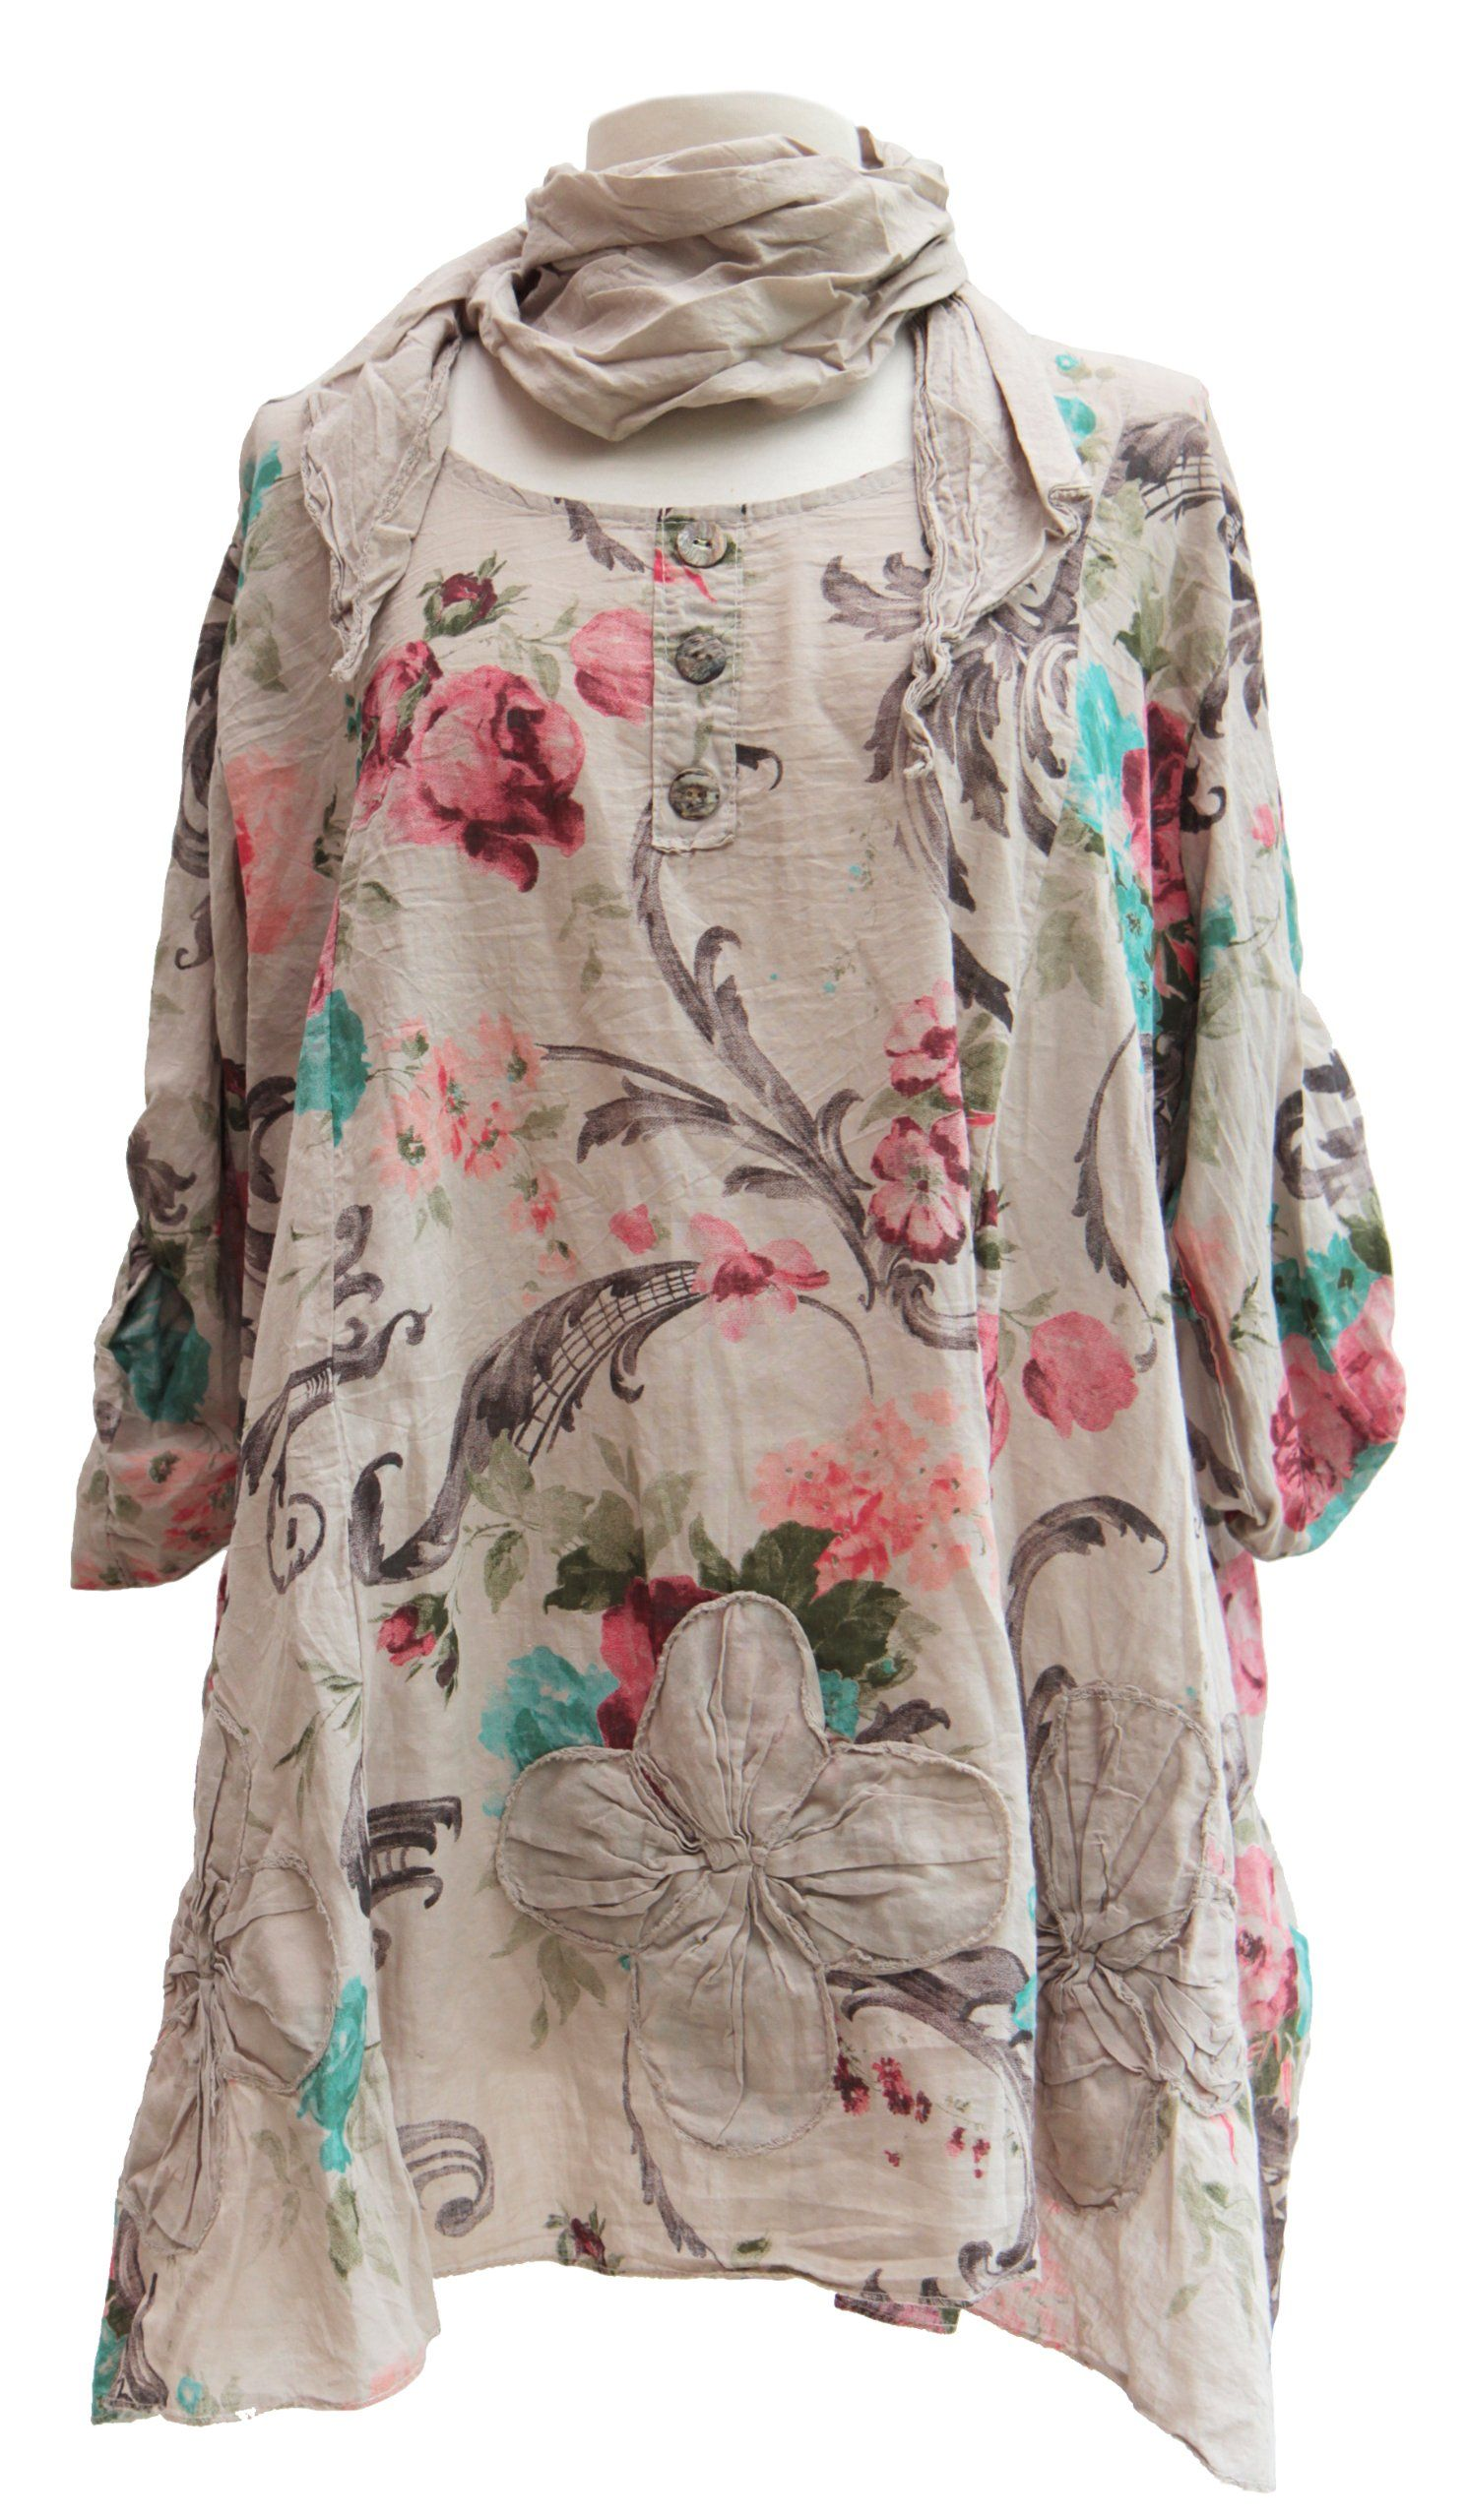 e361aa9c8d5 Ladies Womens Italian Lagenlook Quirky Floral Print Tunic Top Scarf Set  Shirt Cotton One Size Plus Blouse (One Size (Plus), Beige)